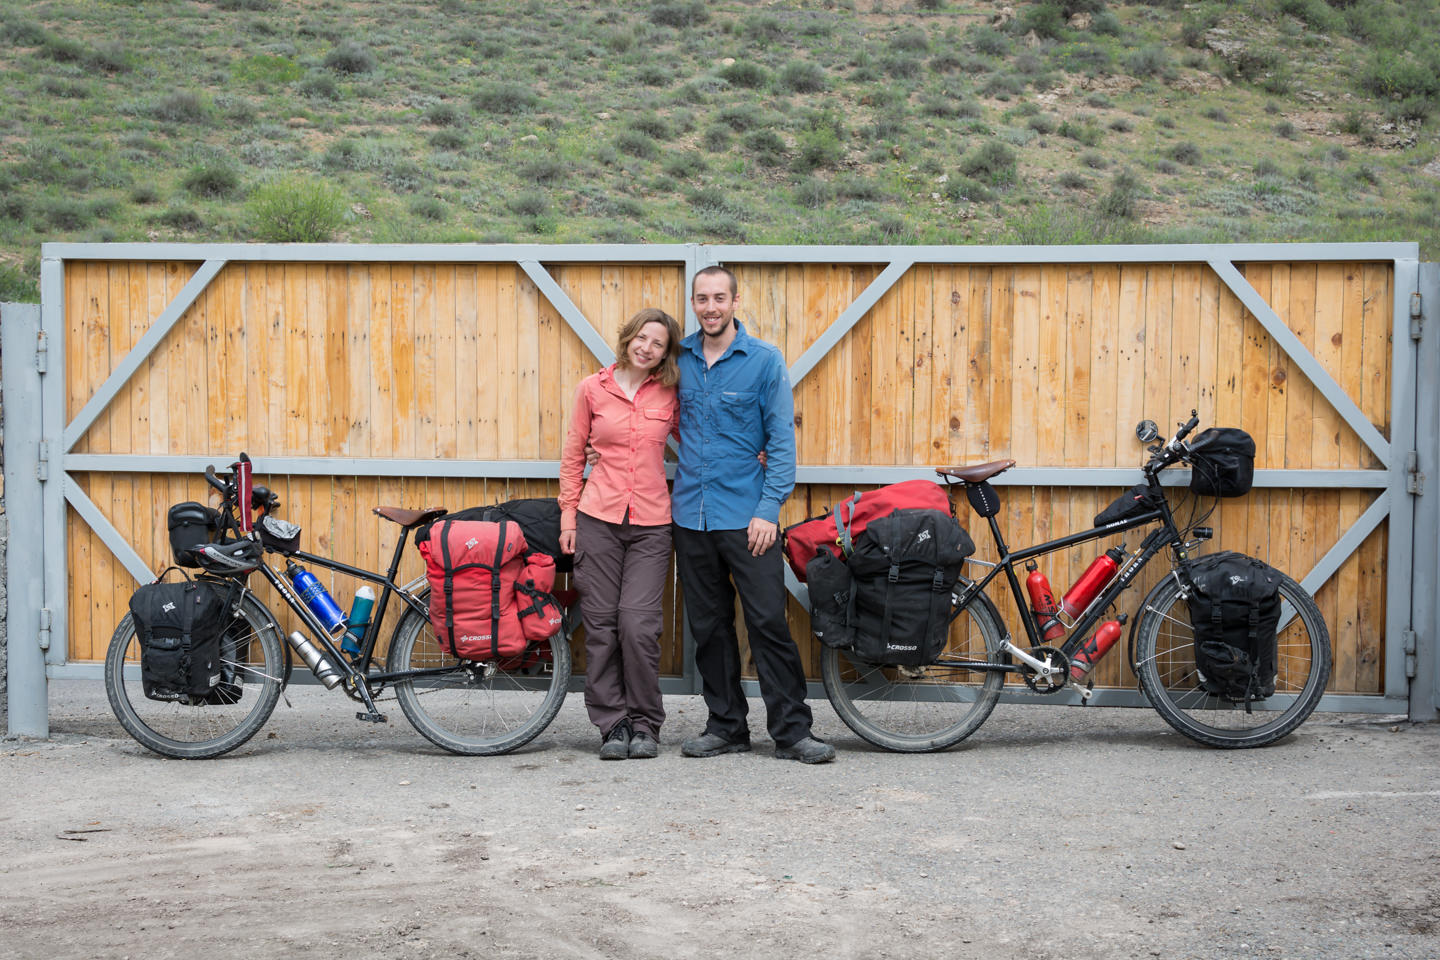 Pablo and Ilze are traveling by bicycle around the world